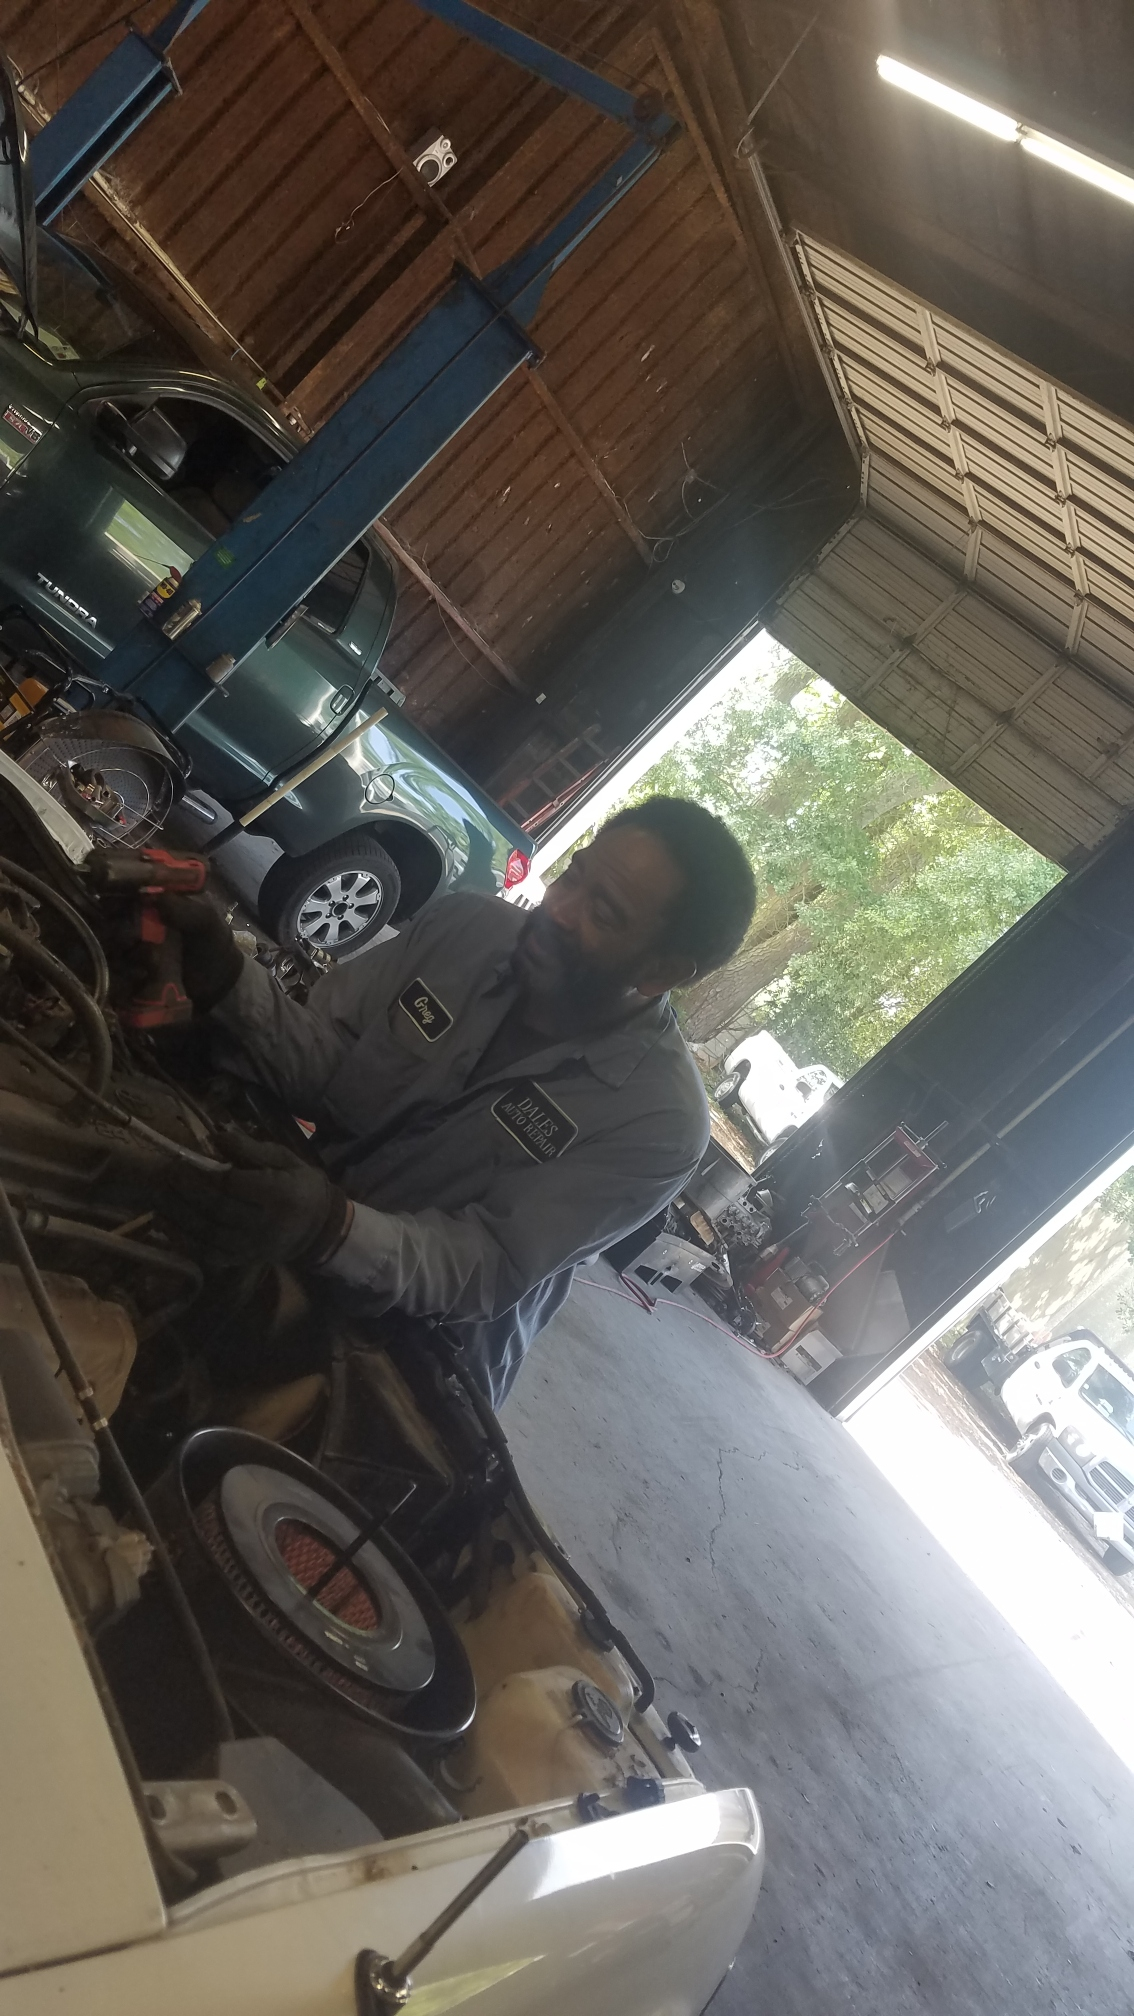 Dale's Auto Repair has ASE certified technicians are fully trained and work hard to get you back on the road quickly.